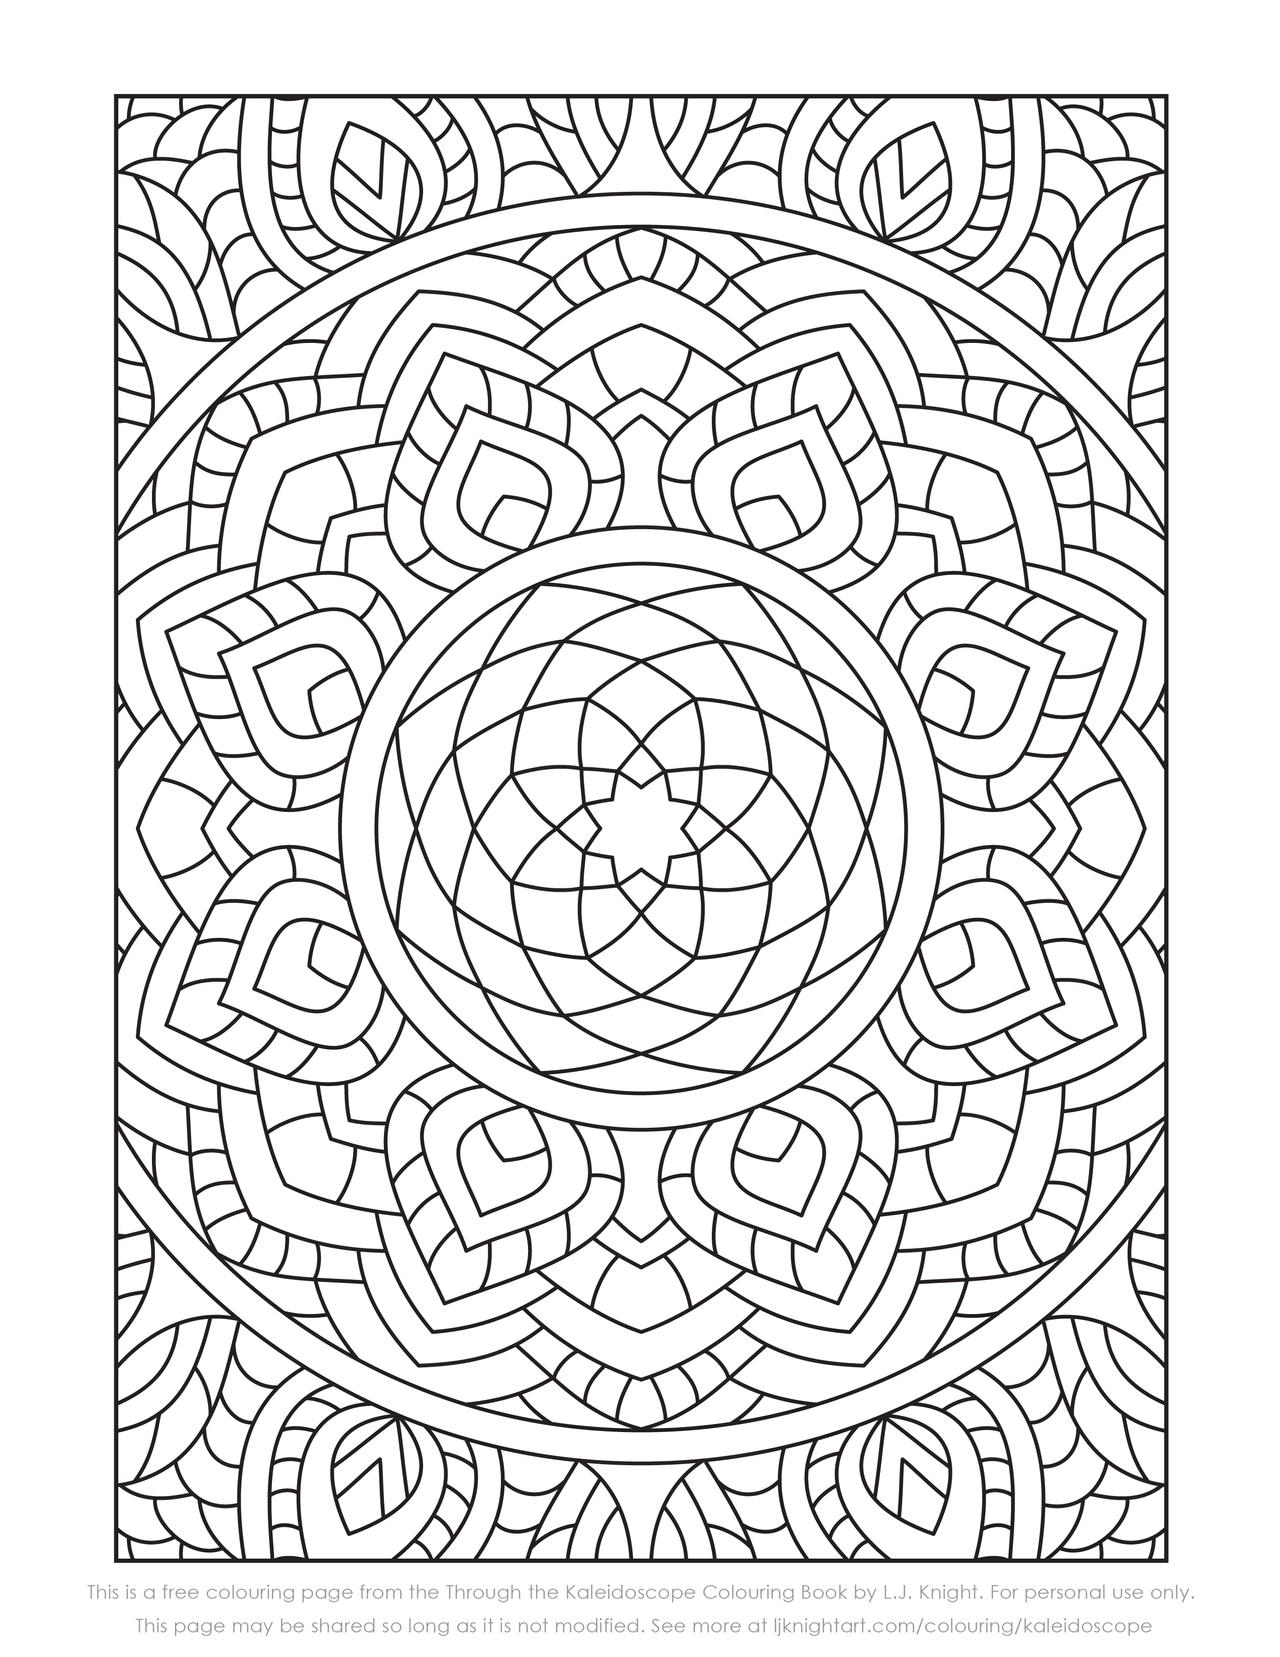 Breathtaking Kaleidoscope Coloring Page | FaveCrafts.com | 1657x1280